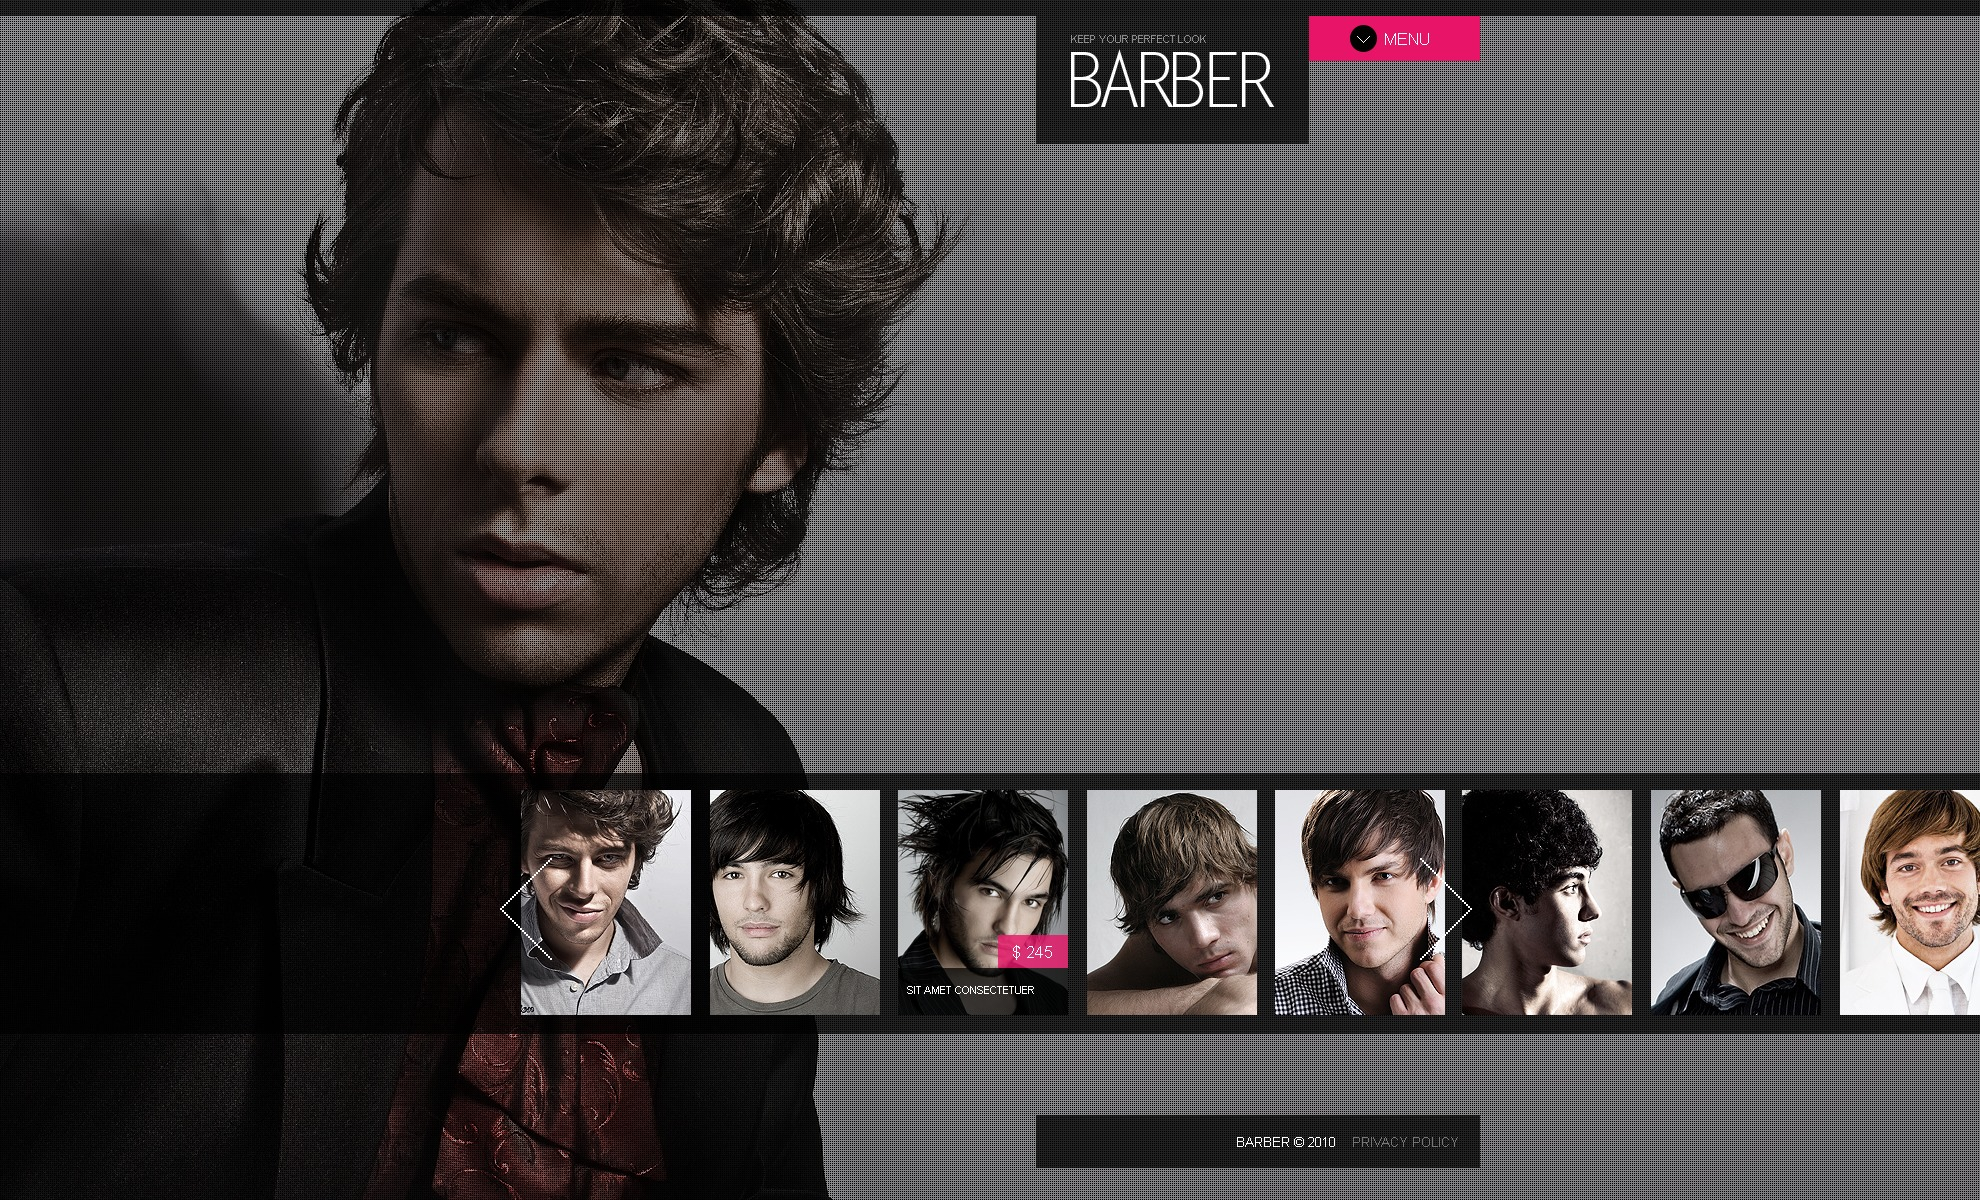 The Barber Siren PSD Design 54472, one of the best PSD templates of its kind (beauty, music, wide, jquery), also known as barber siren PSD template, barbershop PSD template, hair salon PSD template, fashion PSD template, style PSD template, services PSD template, models PSD template, catalogue PSD template, masters PSD template, experts PSD template, portfolio PSD template, awards PSD template, waving PSD template, arranging PSD template, coloring PSD template, advices PSD template, coiffure PSD template, hairdresser PSD template, glamour beauty PSD template, health and related with barber siren, barbershop, hair salon, fashion, style, services, models, catalogue, masters, experts, portfolio, awards, waving, arranging, coloring, advices, coiffure, hairdresser, glamour beauty, health, etc.